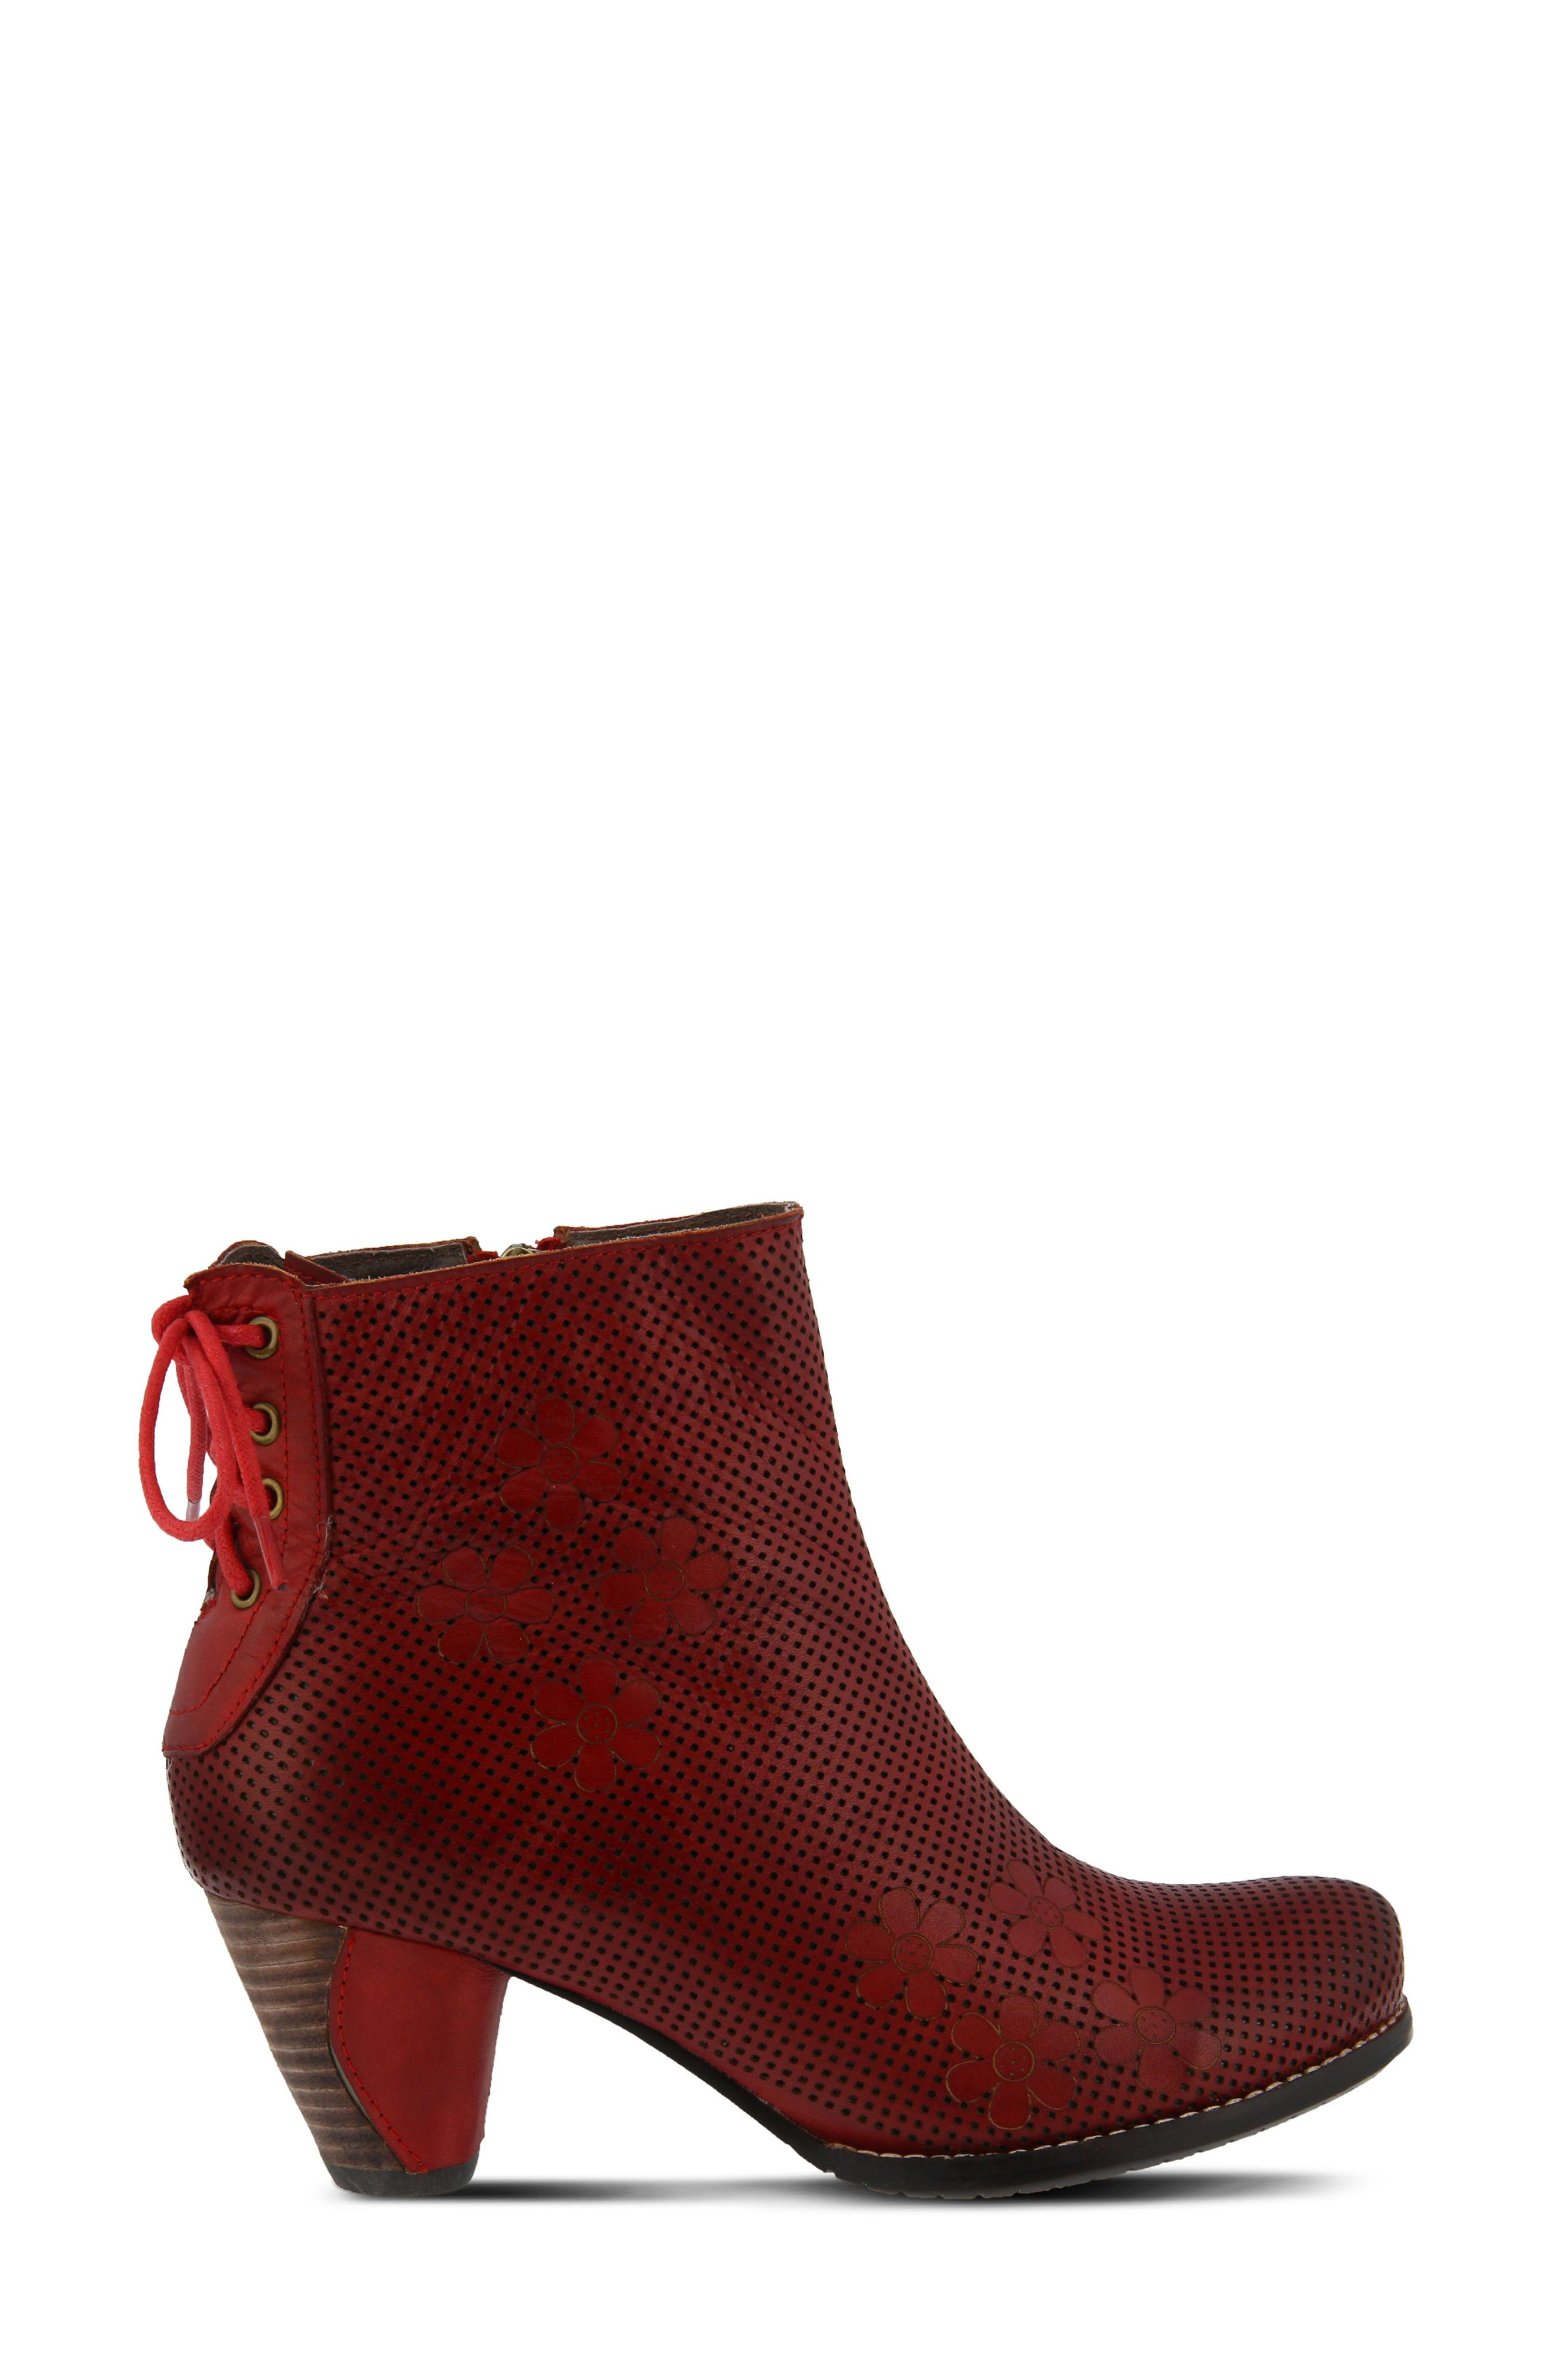 L'Artiste Teca Bootie,                             Alternate thumbnail 3, color,                             Red Leather